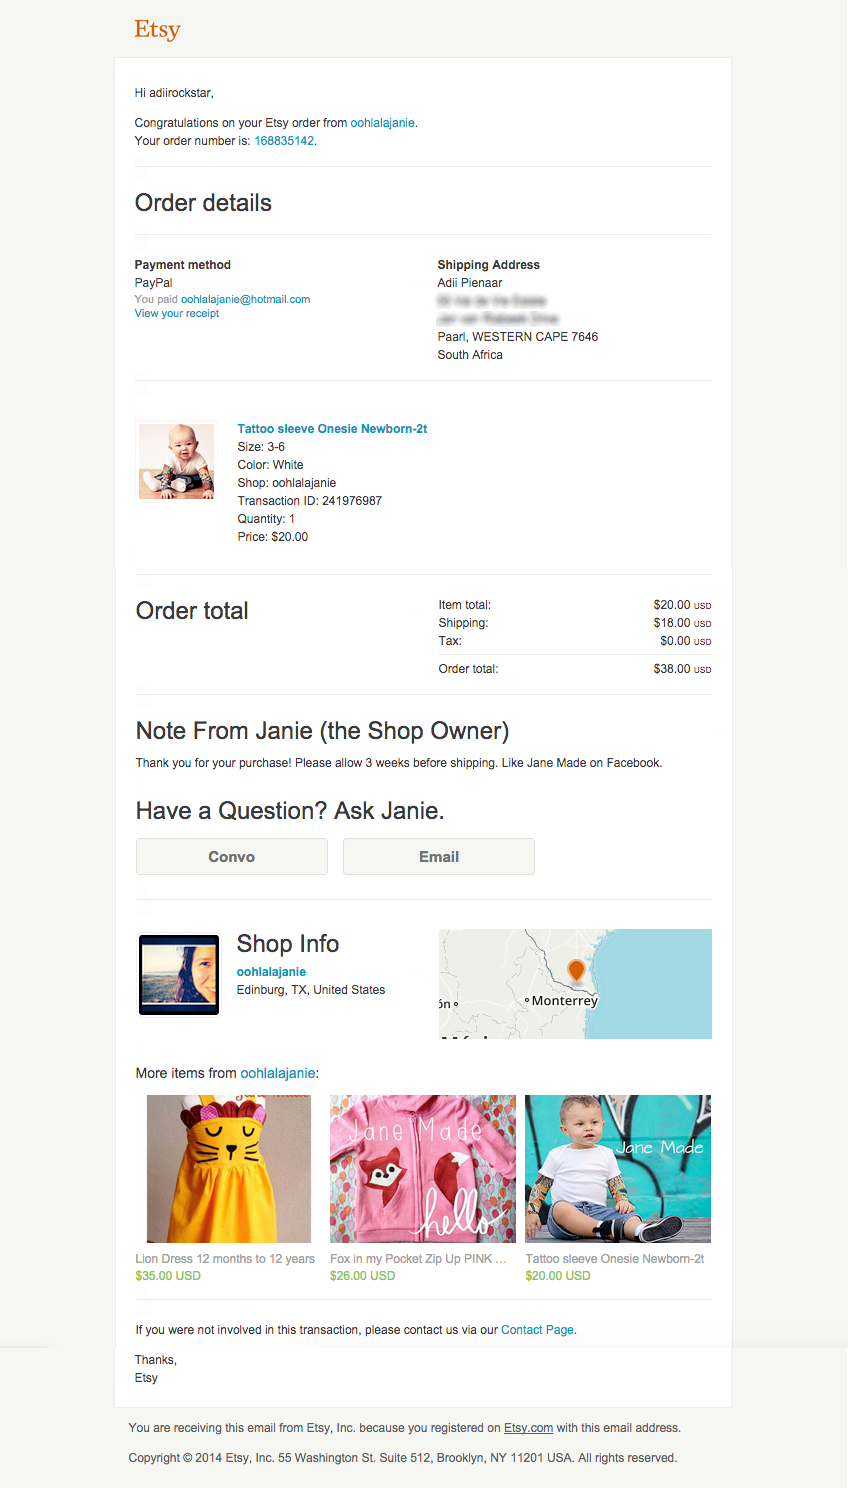 Etsy Email Receipt